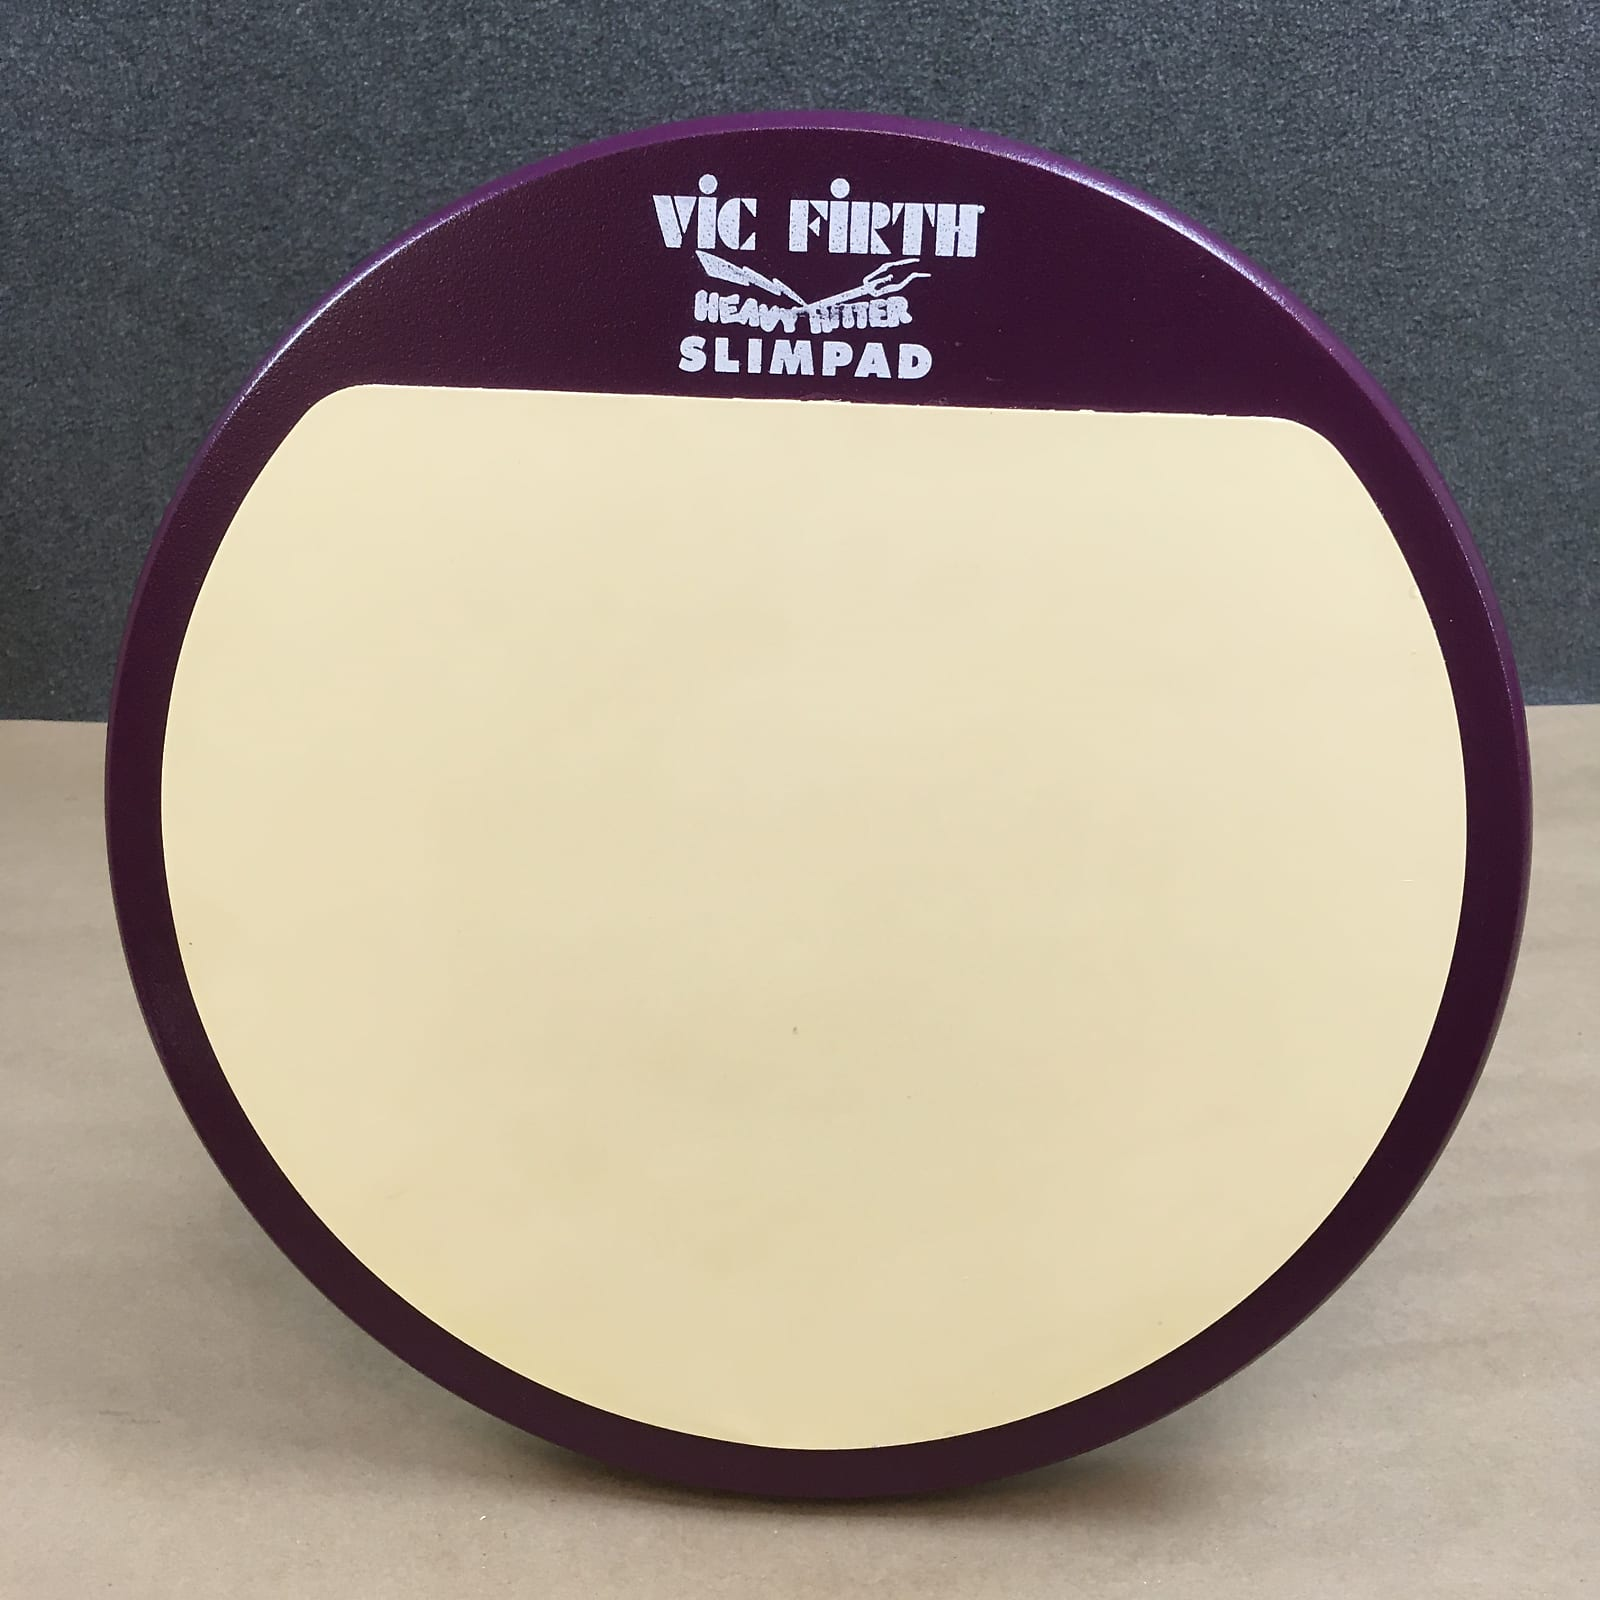 "Vic Firth Slim Pad Heavy Hitter 12"" Practice Pad - Slimpad Marching Drum Corp 1/8"" Gum Rubber HHPSL"